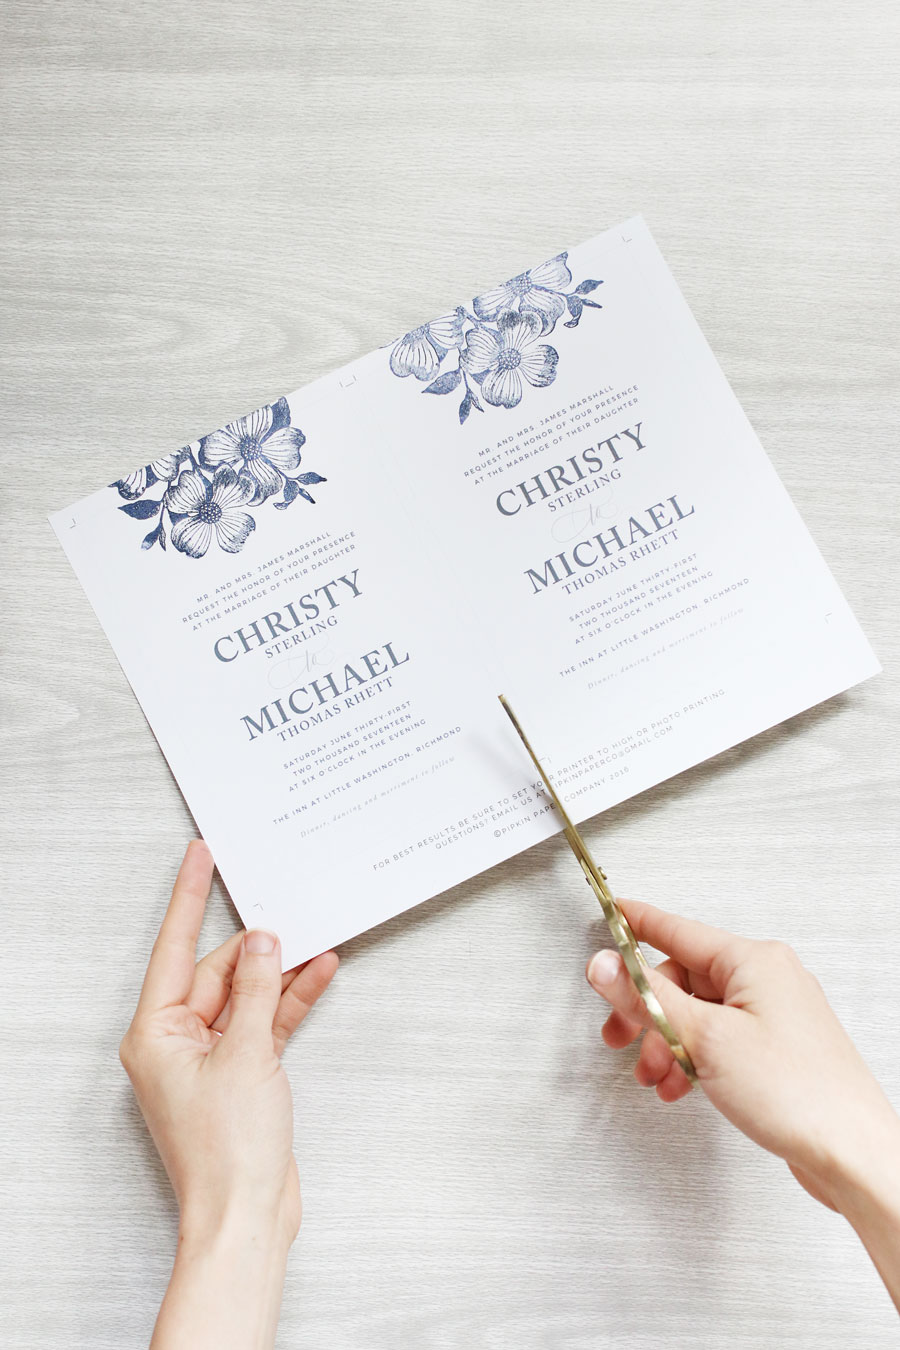 STAMPED FLORAL WEDDING INVITATIONS Pipkin Paper Company